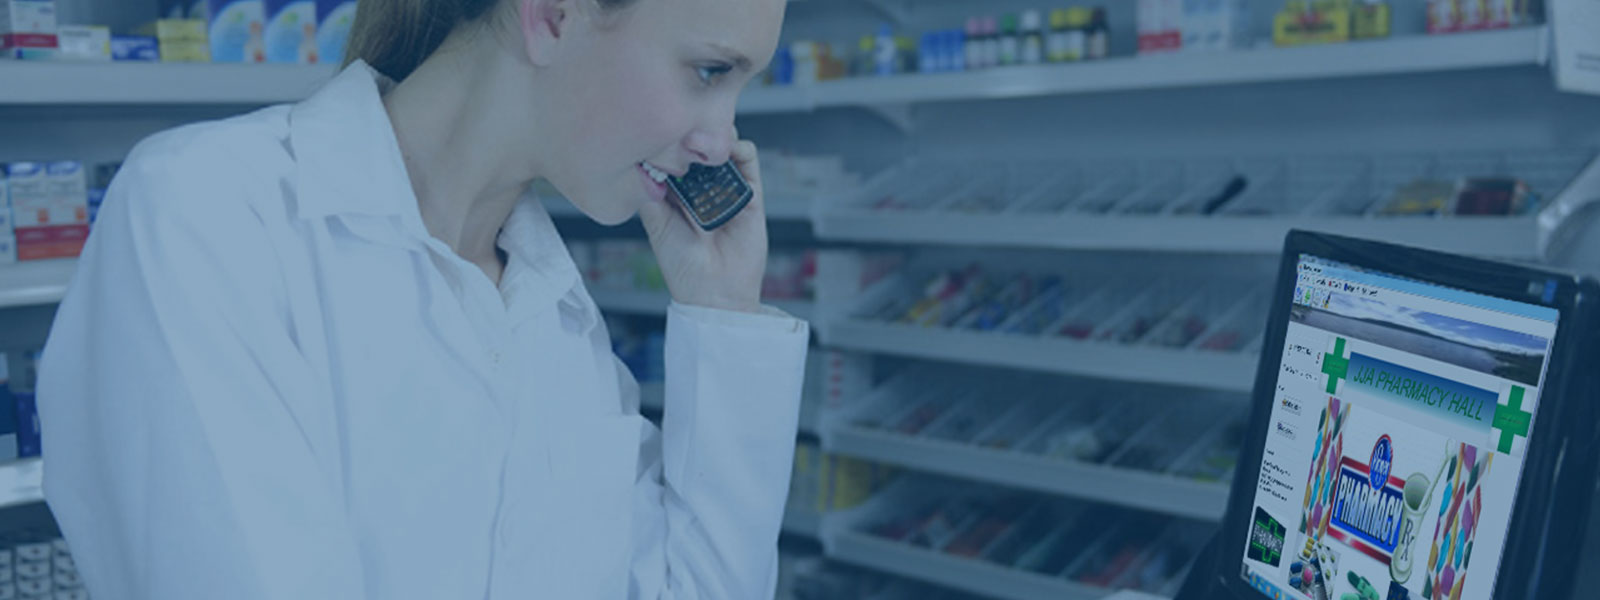 Things To Consider While Selecting Pharmacy Software